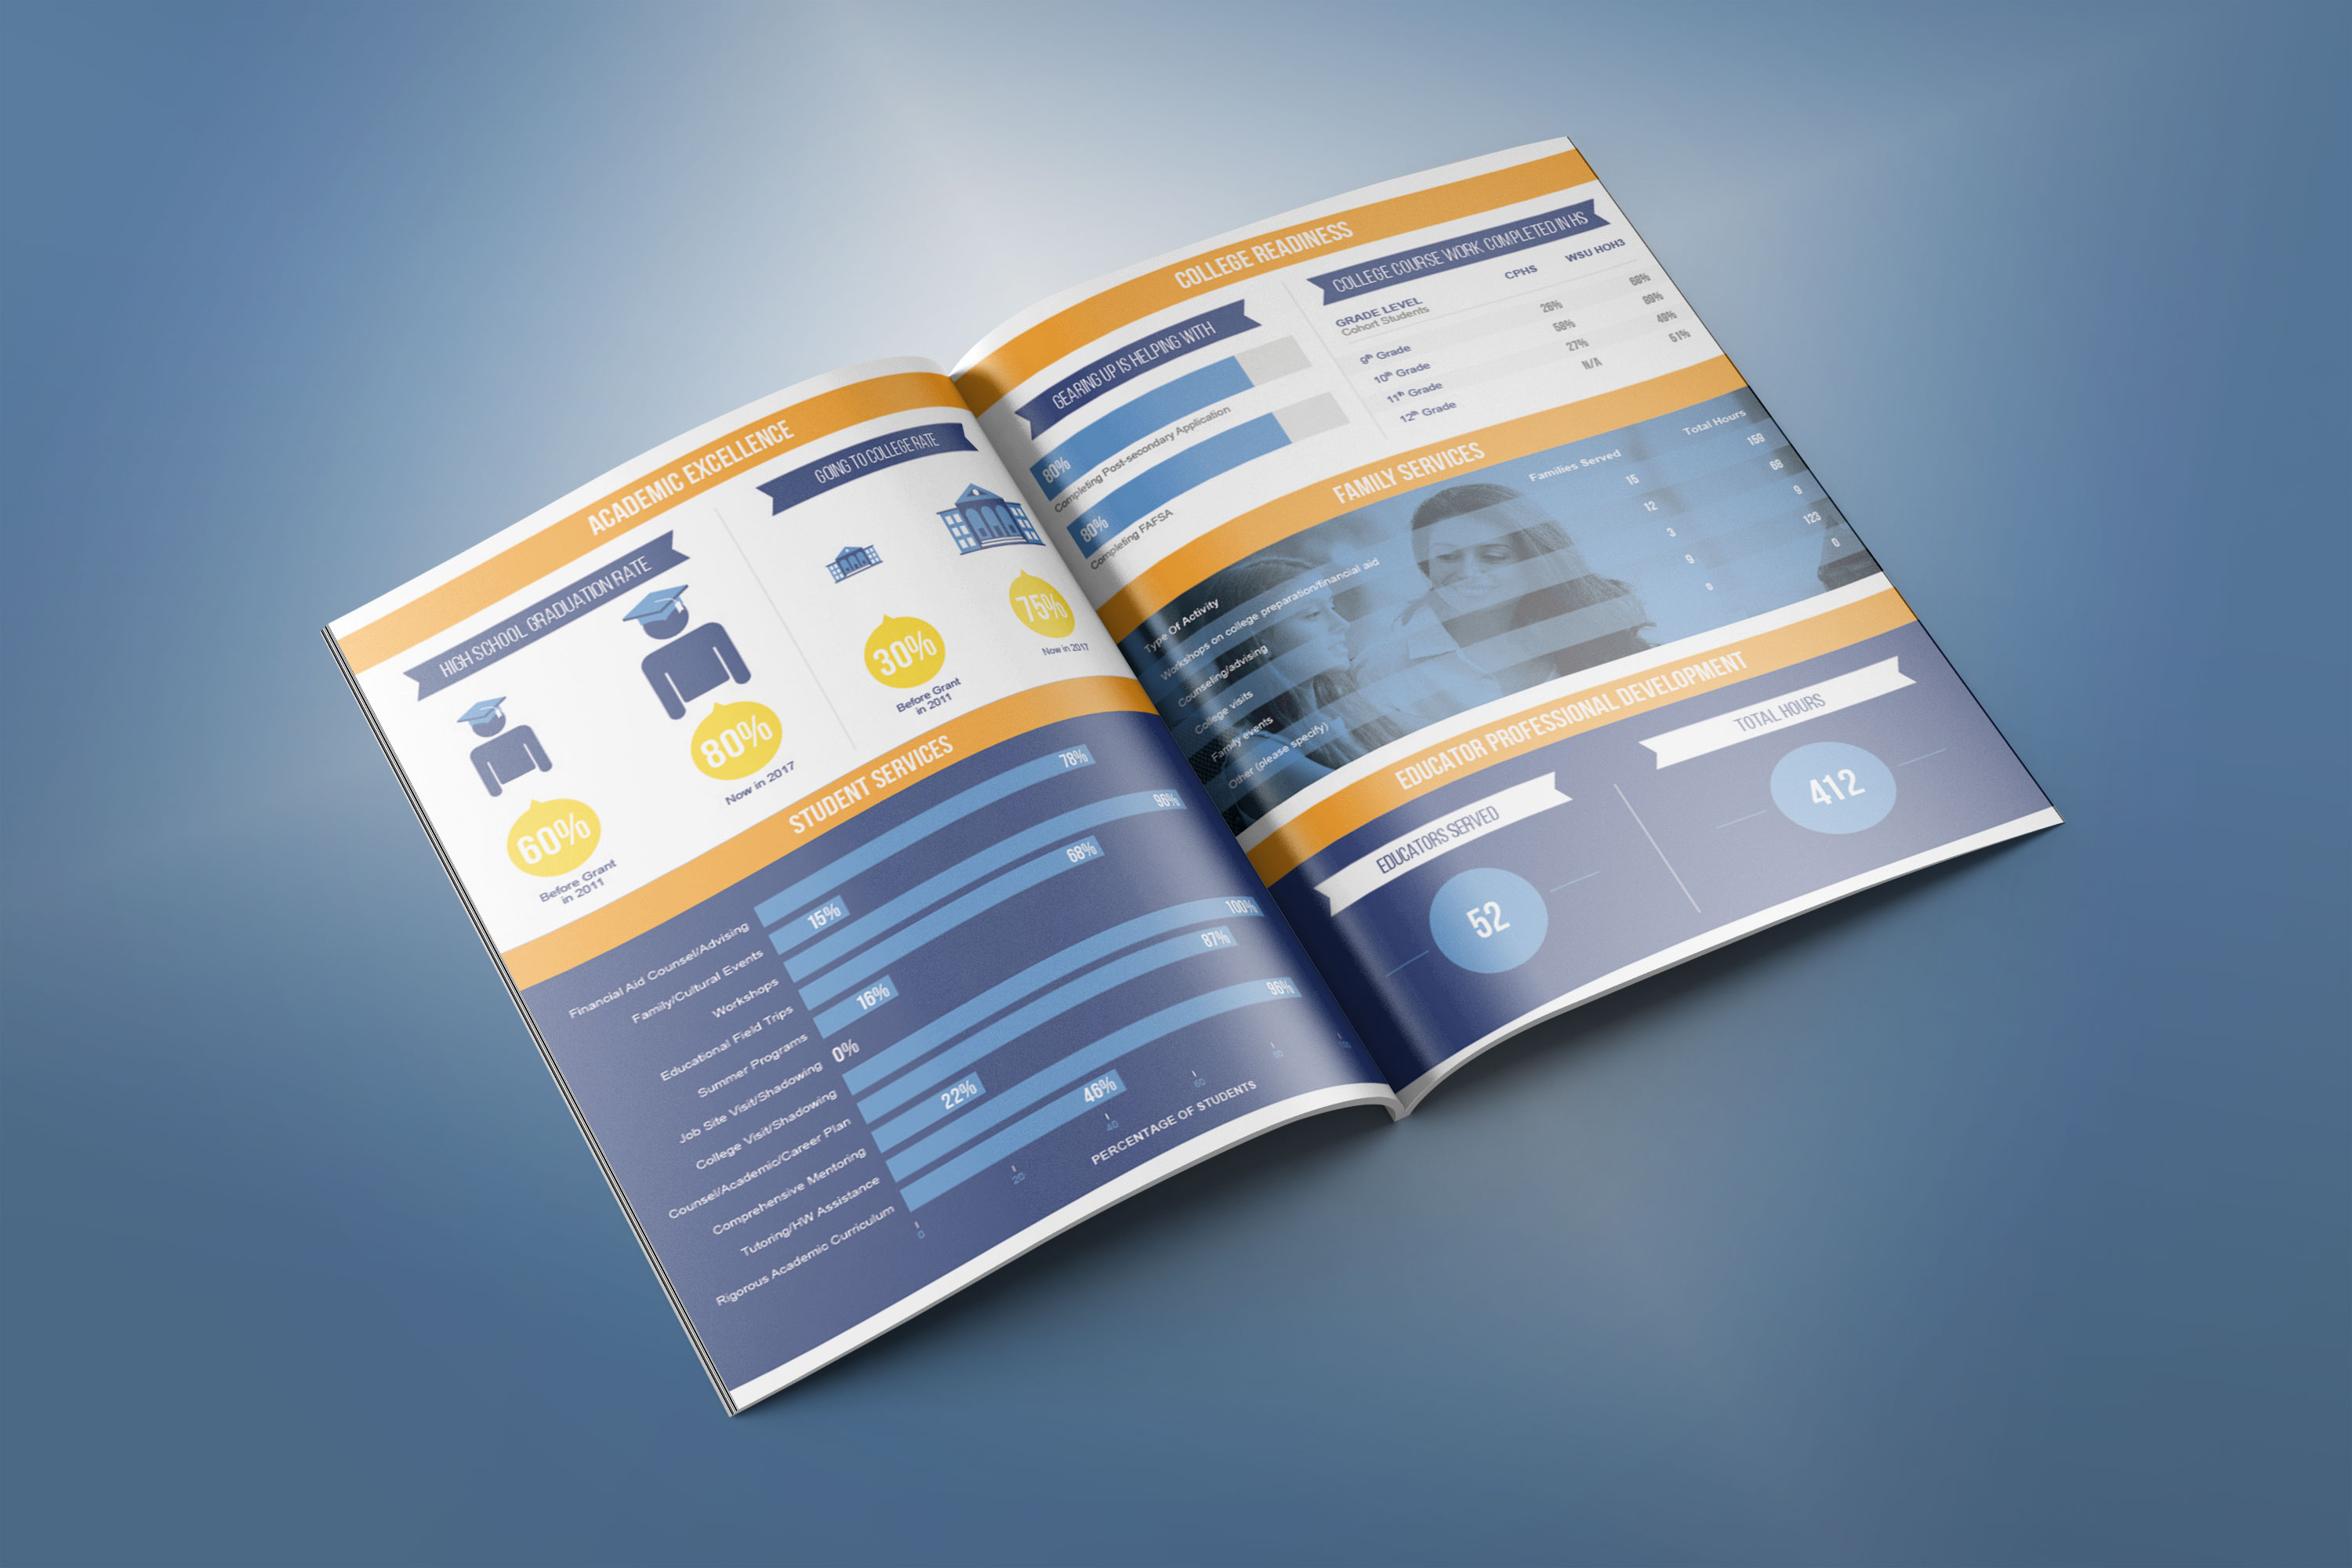 RGI corporation annual report design featuring data visualization and icons